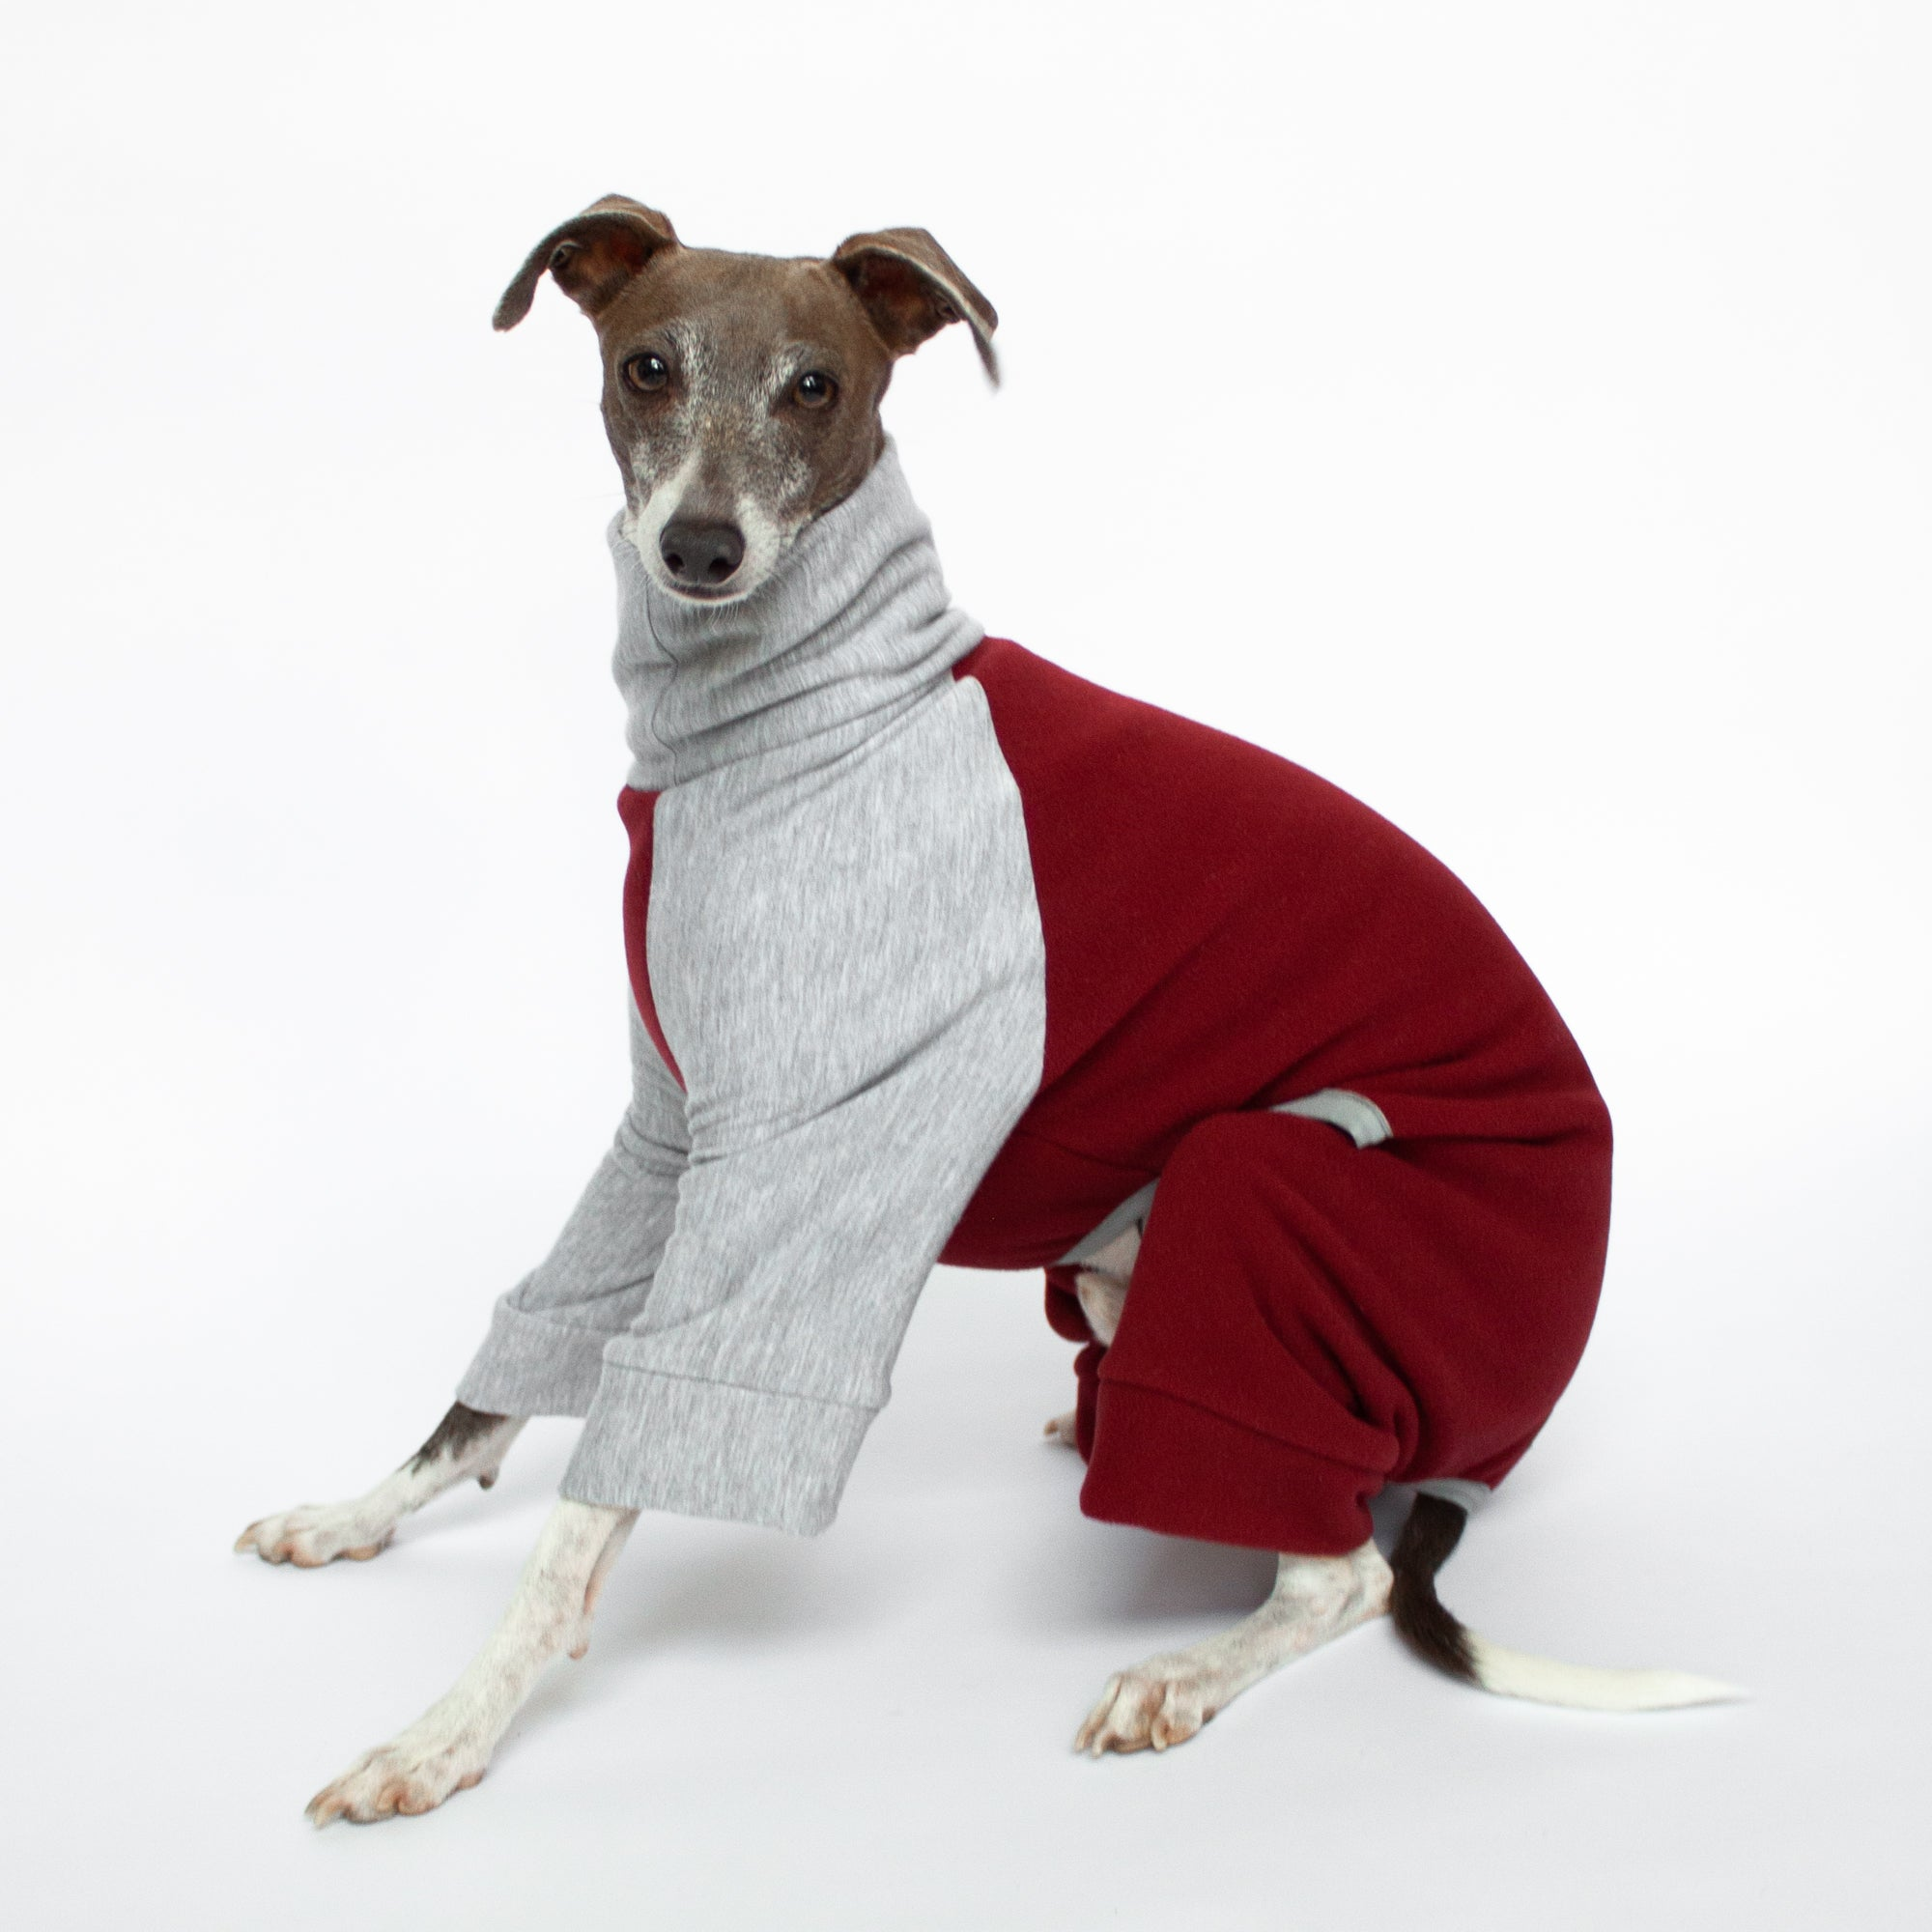 italian greyhound sitting in red and grey fleece dog pajamas